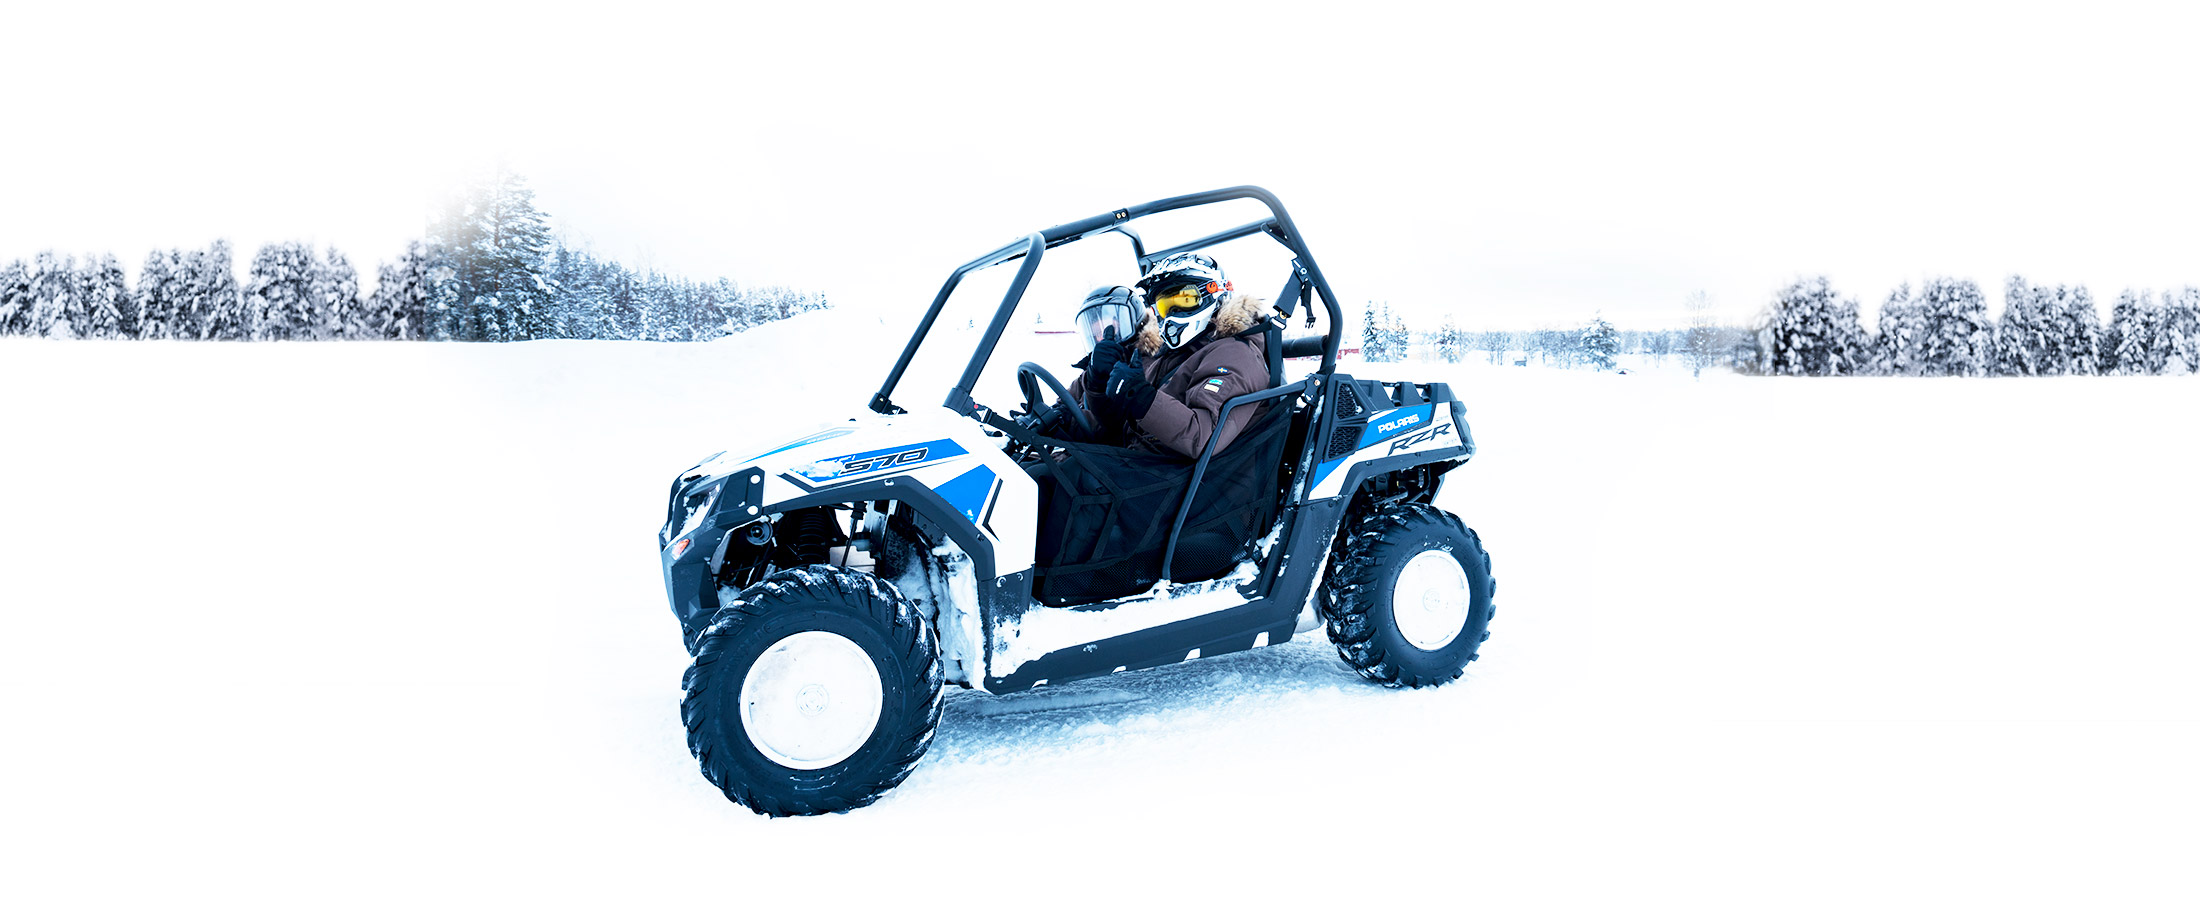 Guesthouse activities_quads - 4-wheel driving on the ice